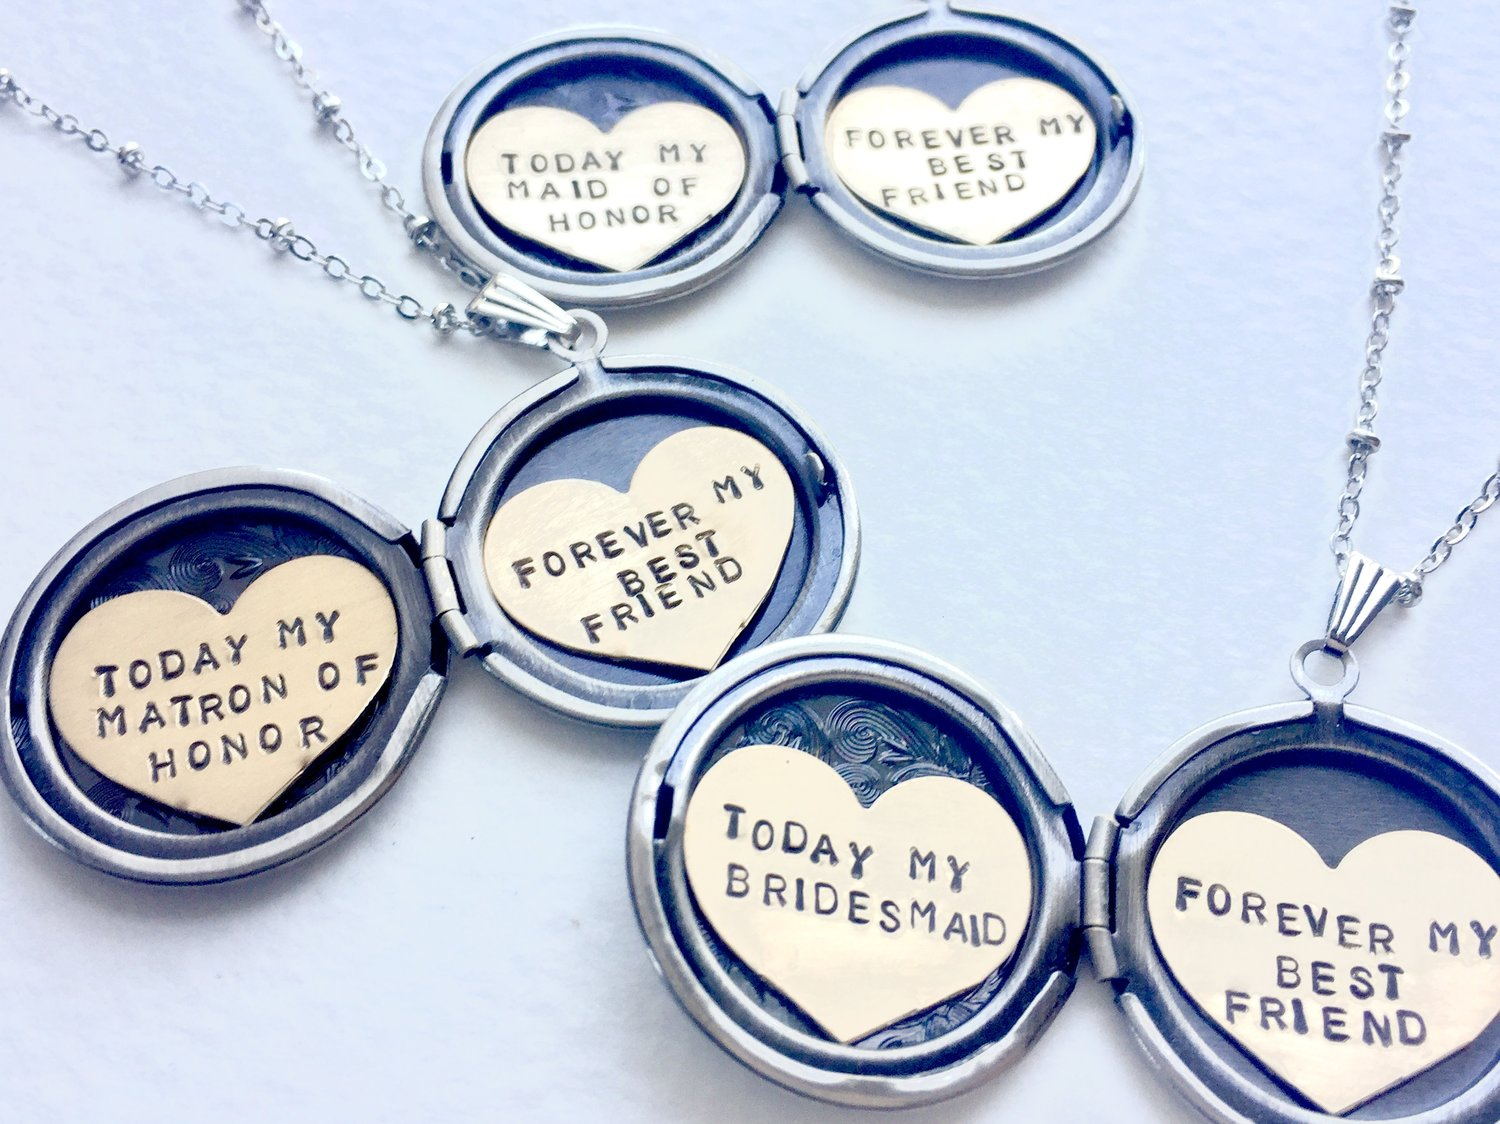 lockets sisters words quote choose locket inspiring friends pendant are friend product necklace the we jewelry best